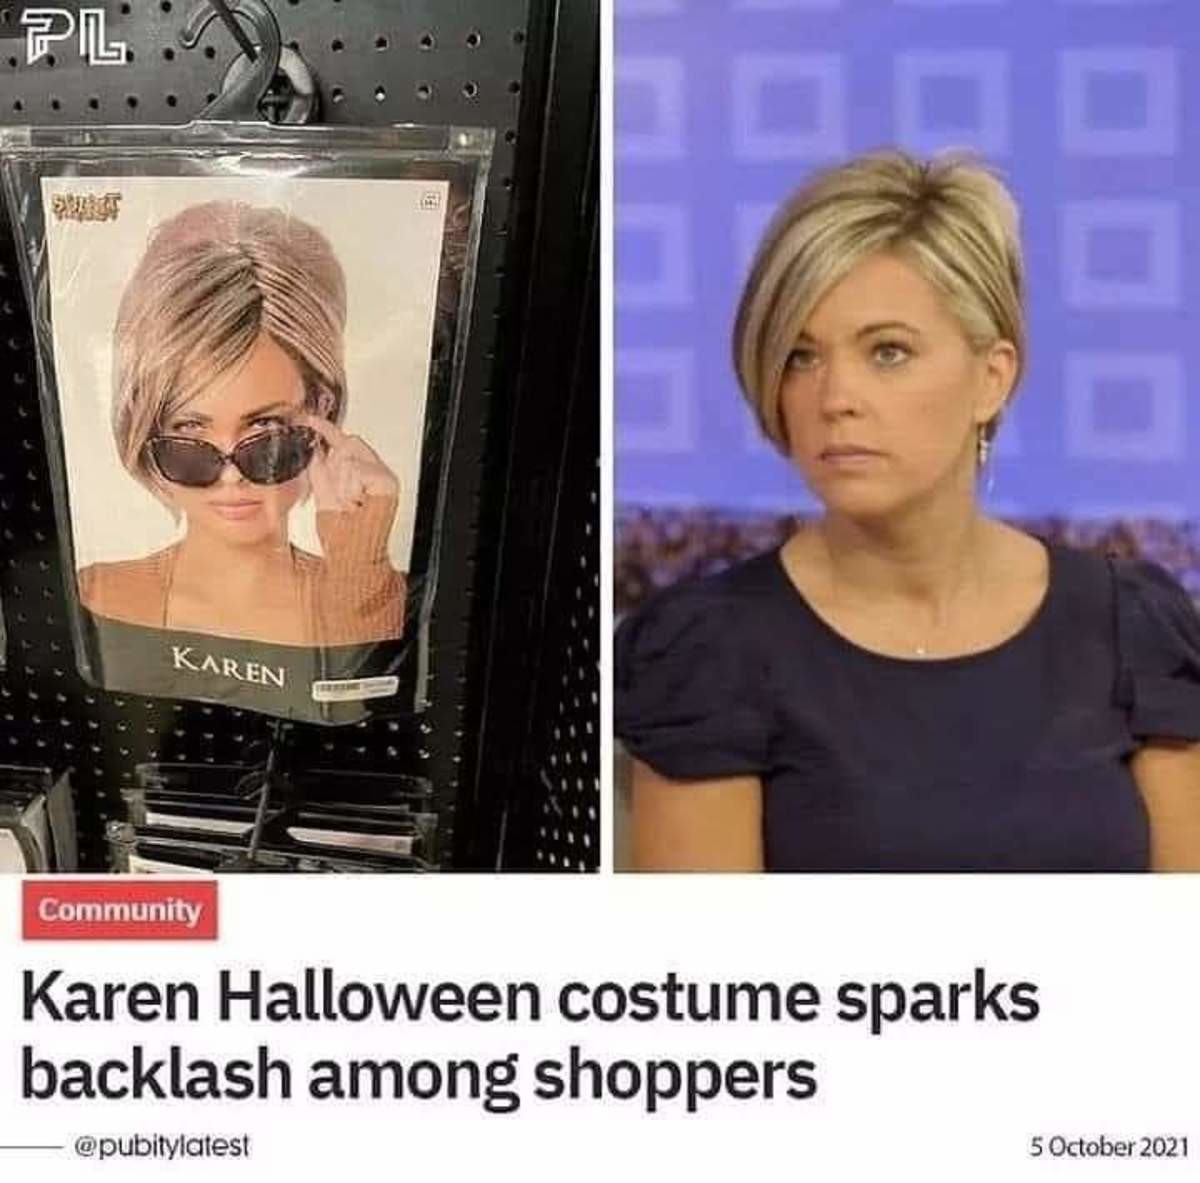 shoppers? you mean karens. .. And what kind of shoppers were they?